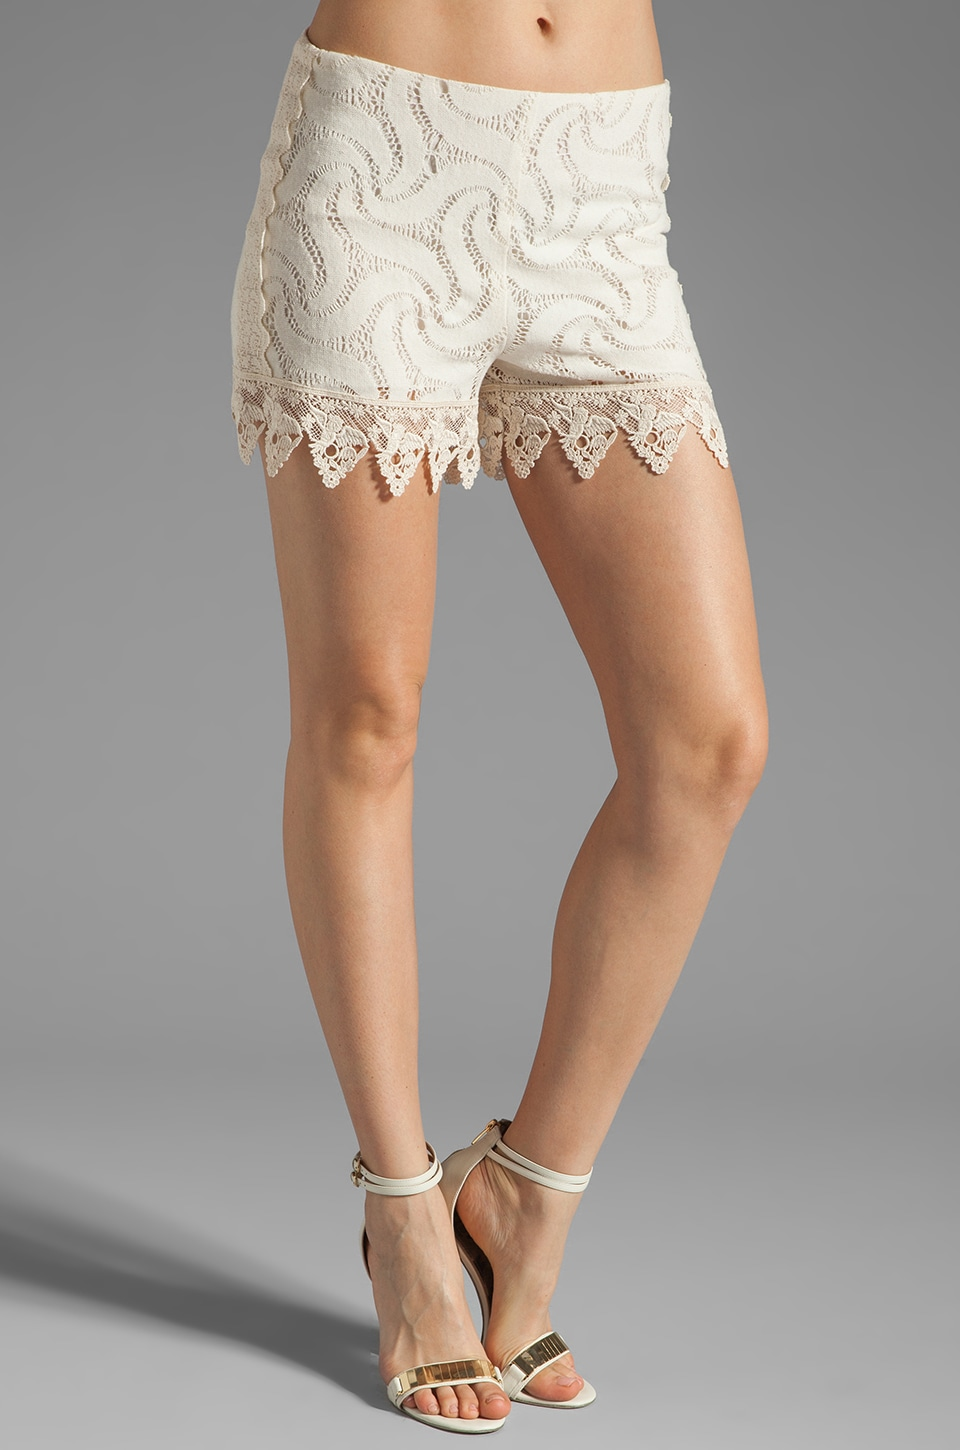 Anna Sui Pinwheel Mixed Lace Short in Cream